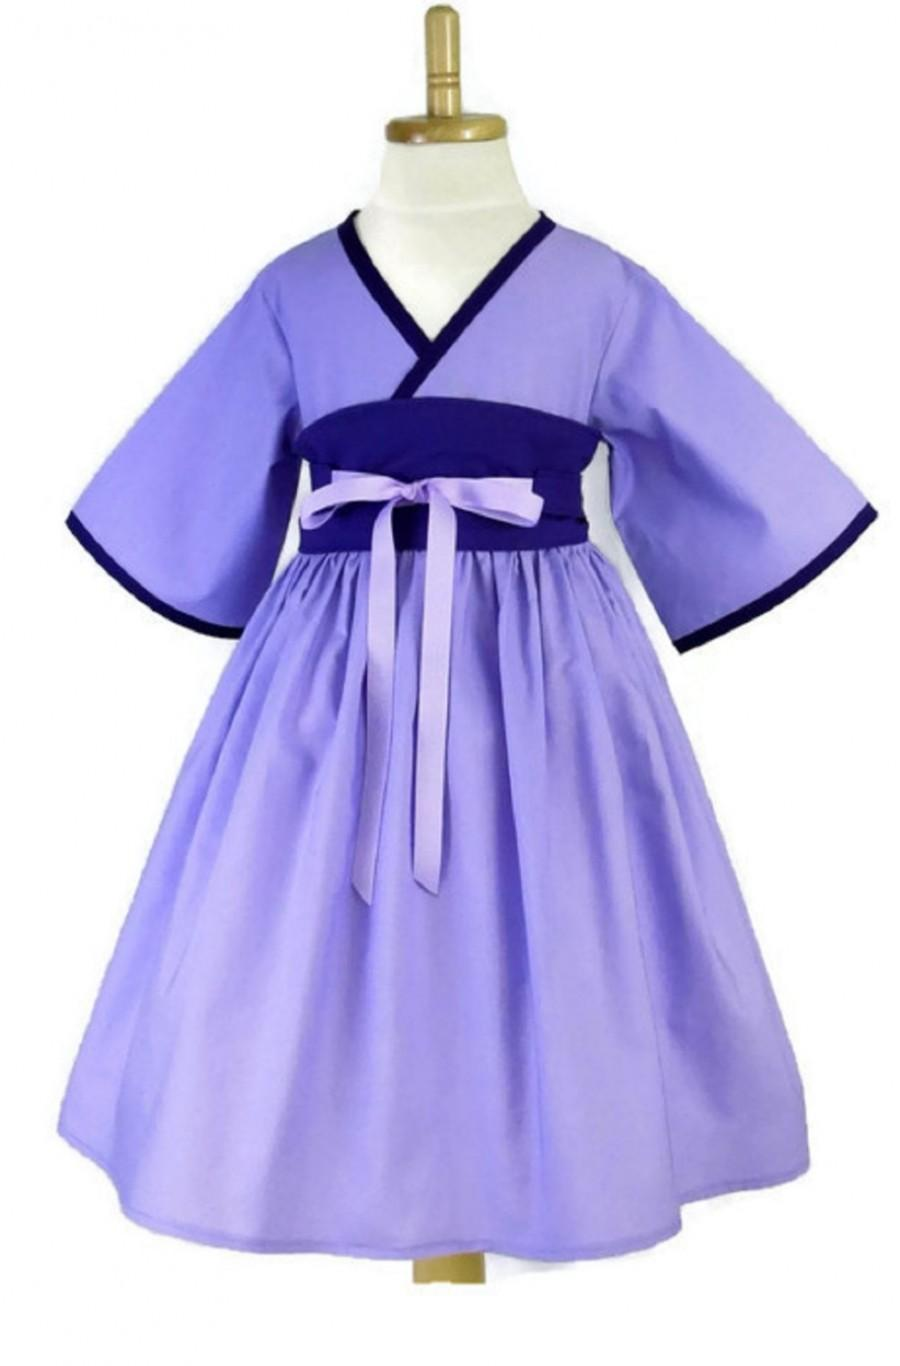 kimono dress girls dress purple dress girls birthday